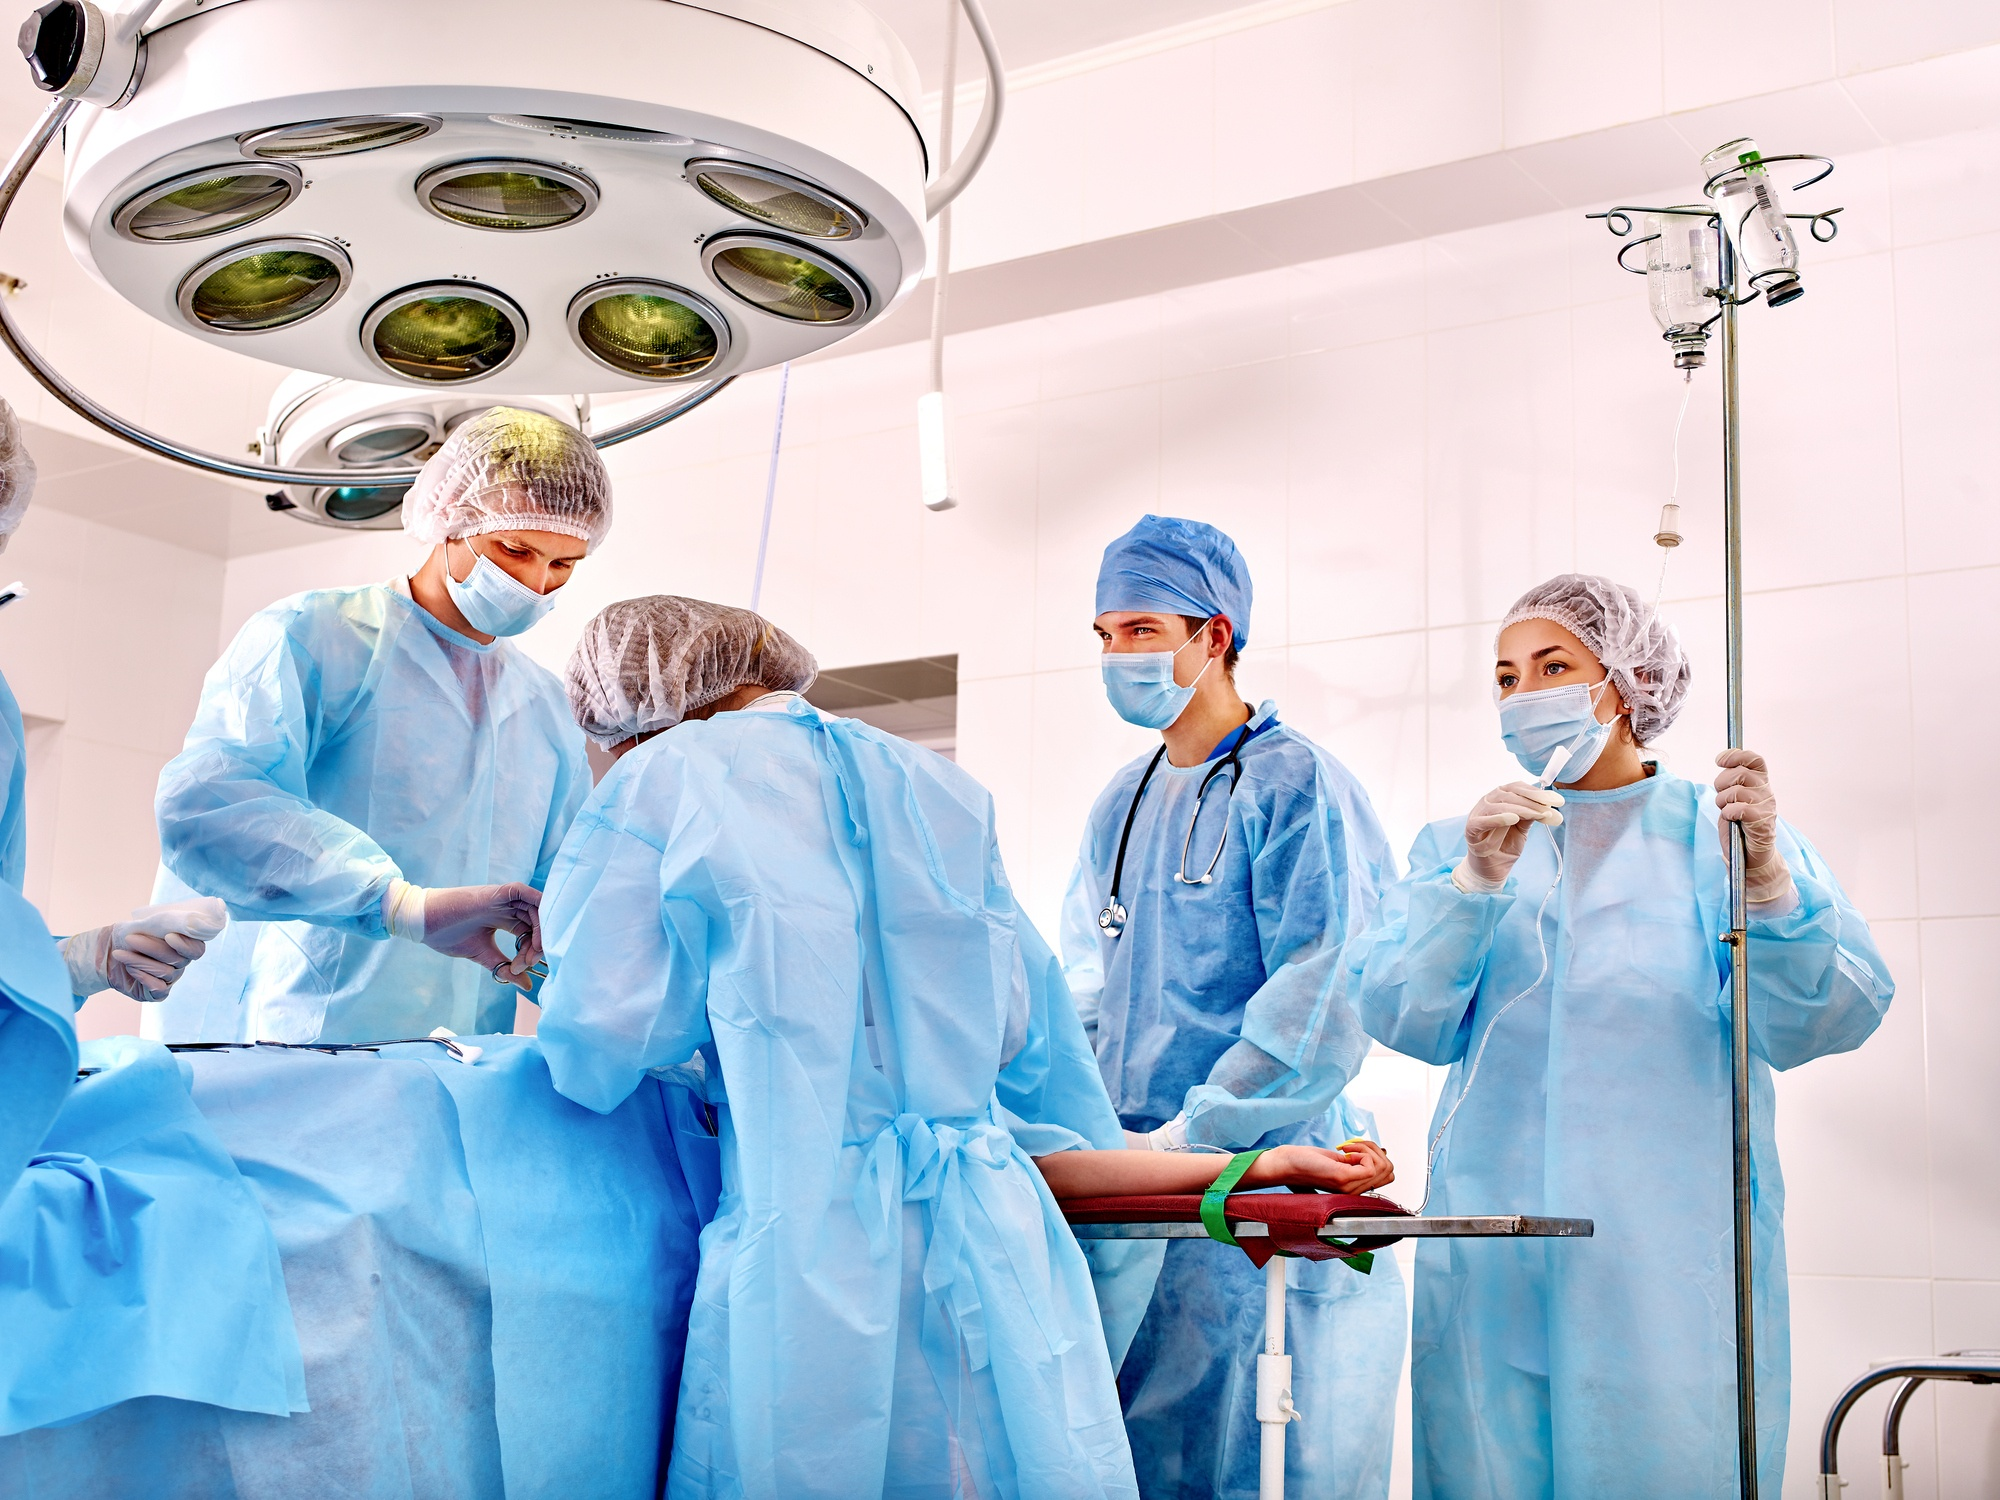 How to Increase Efficiency in the Operating Room